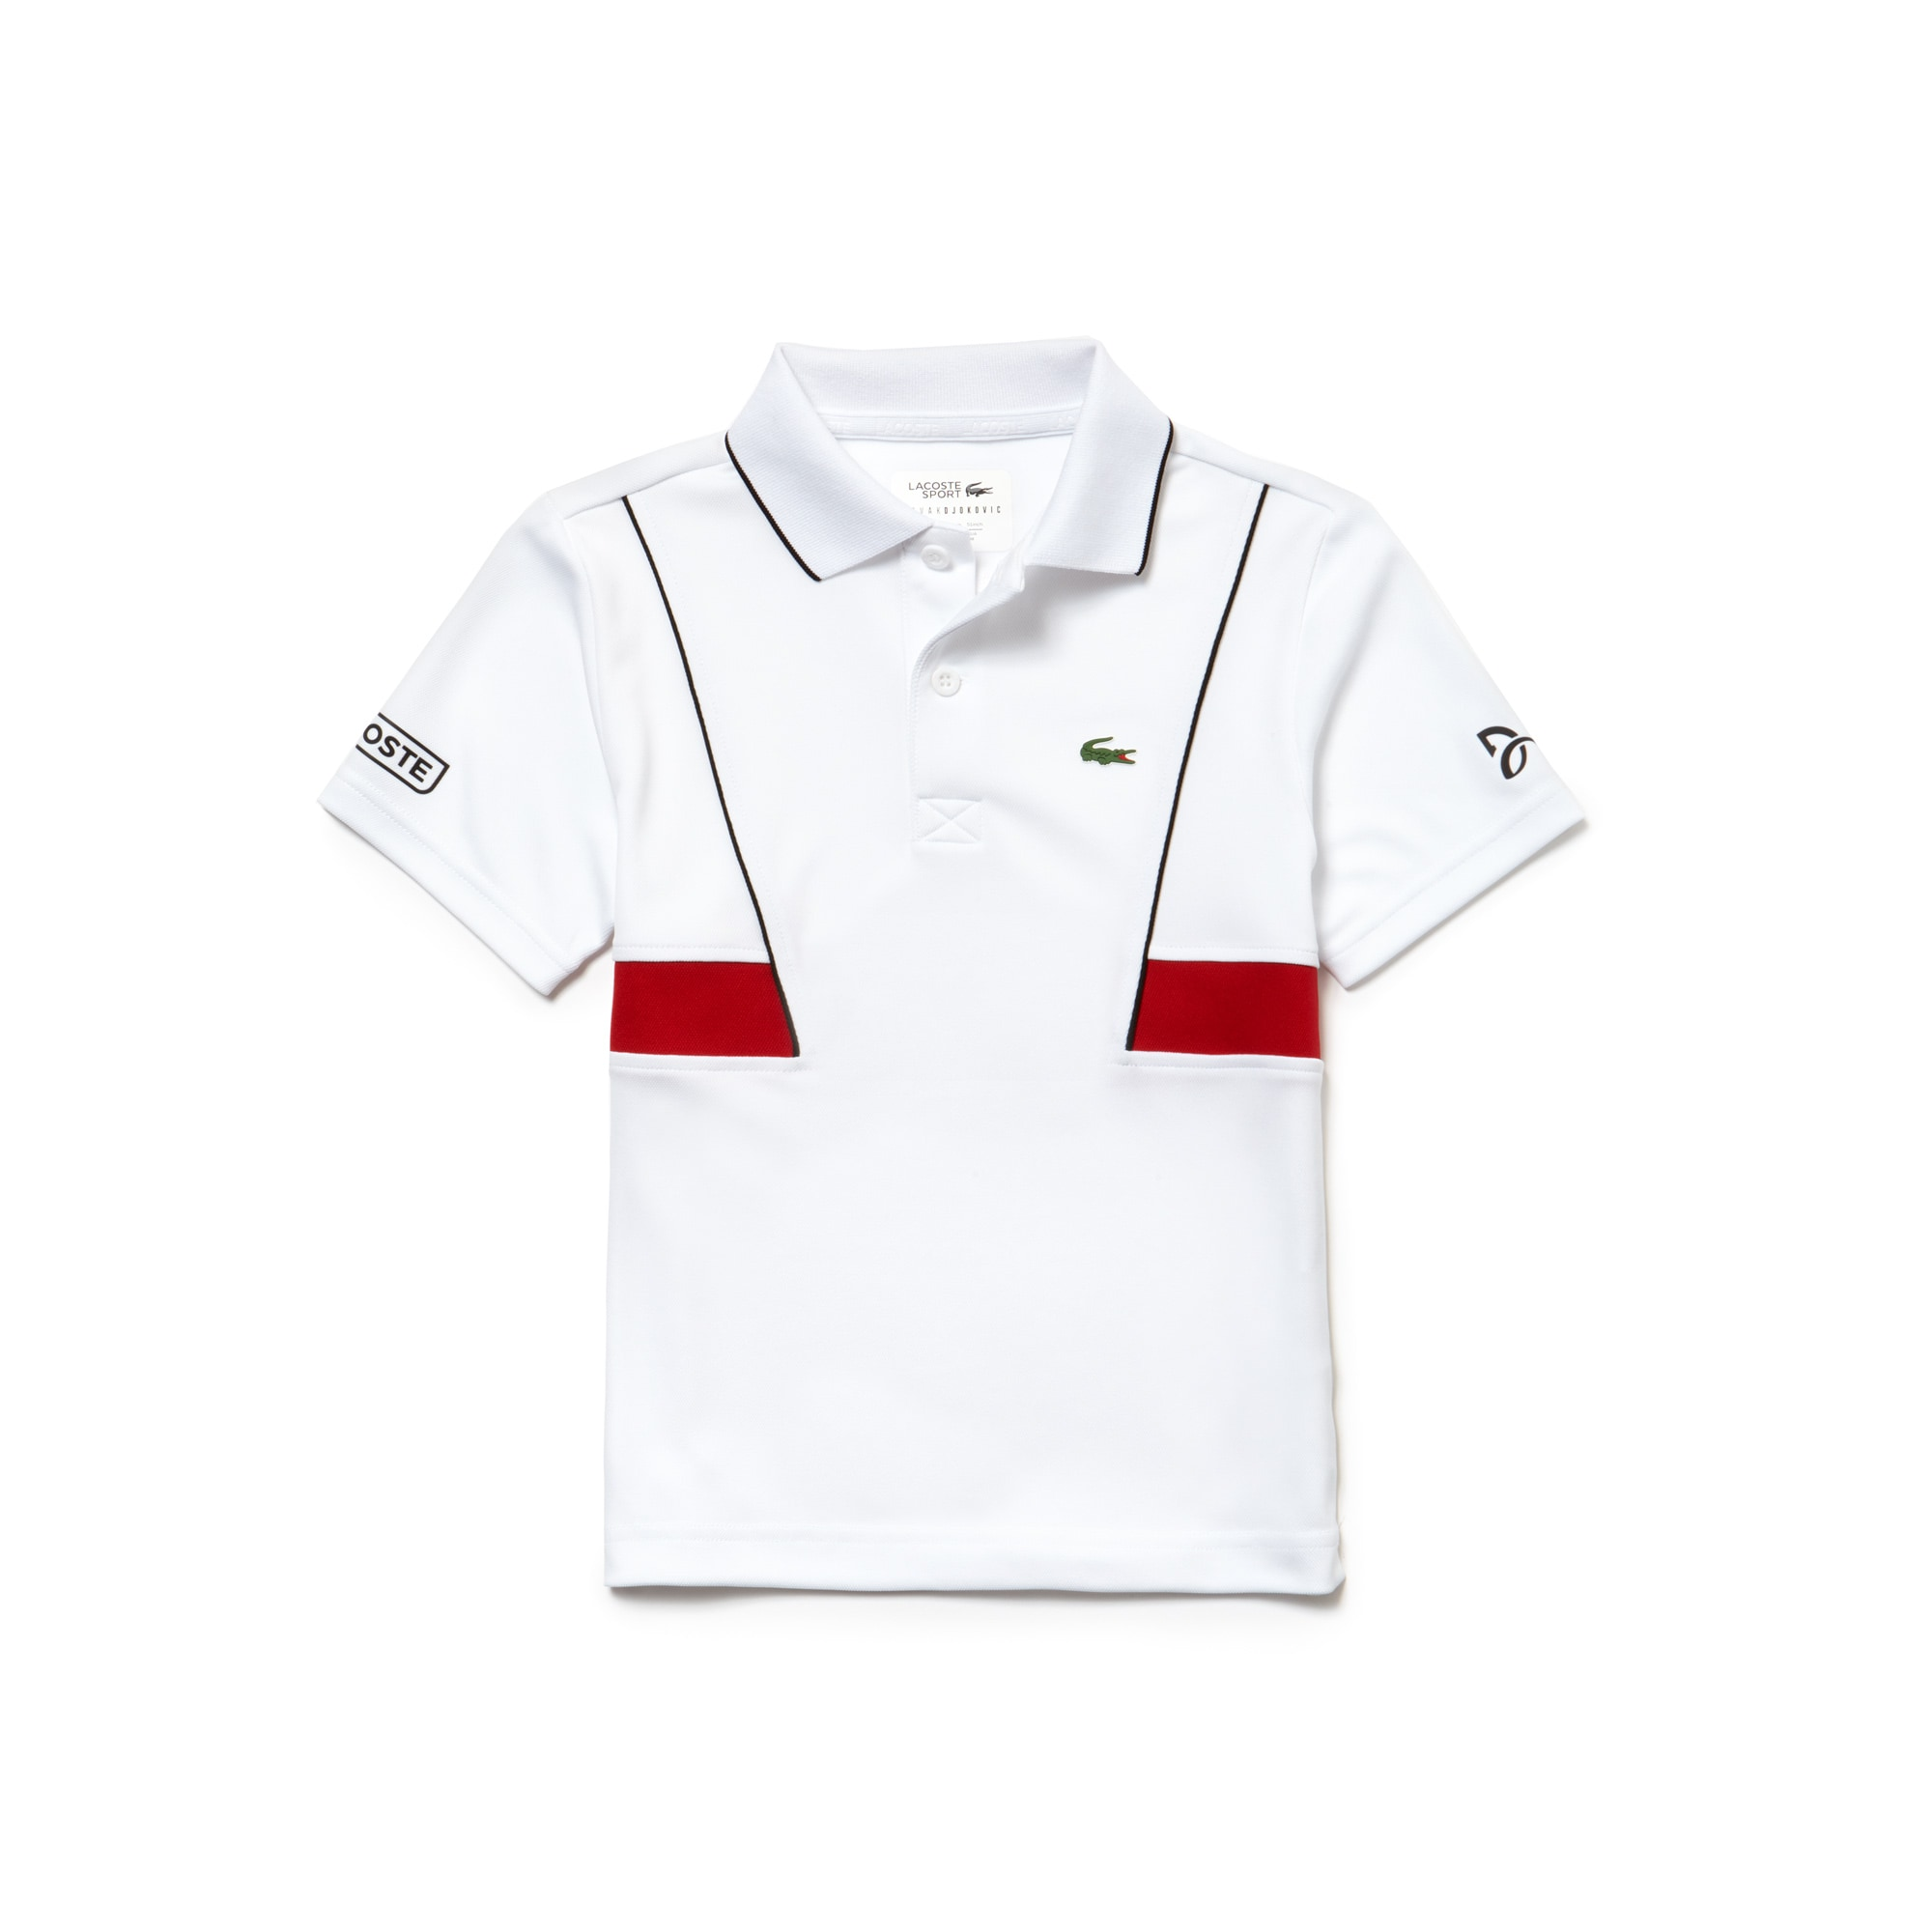 Polo Garçon LACOSTE SPORT COLLECTION NOVAK DJOKOVIC en piqué technique